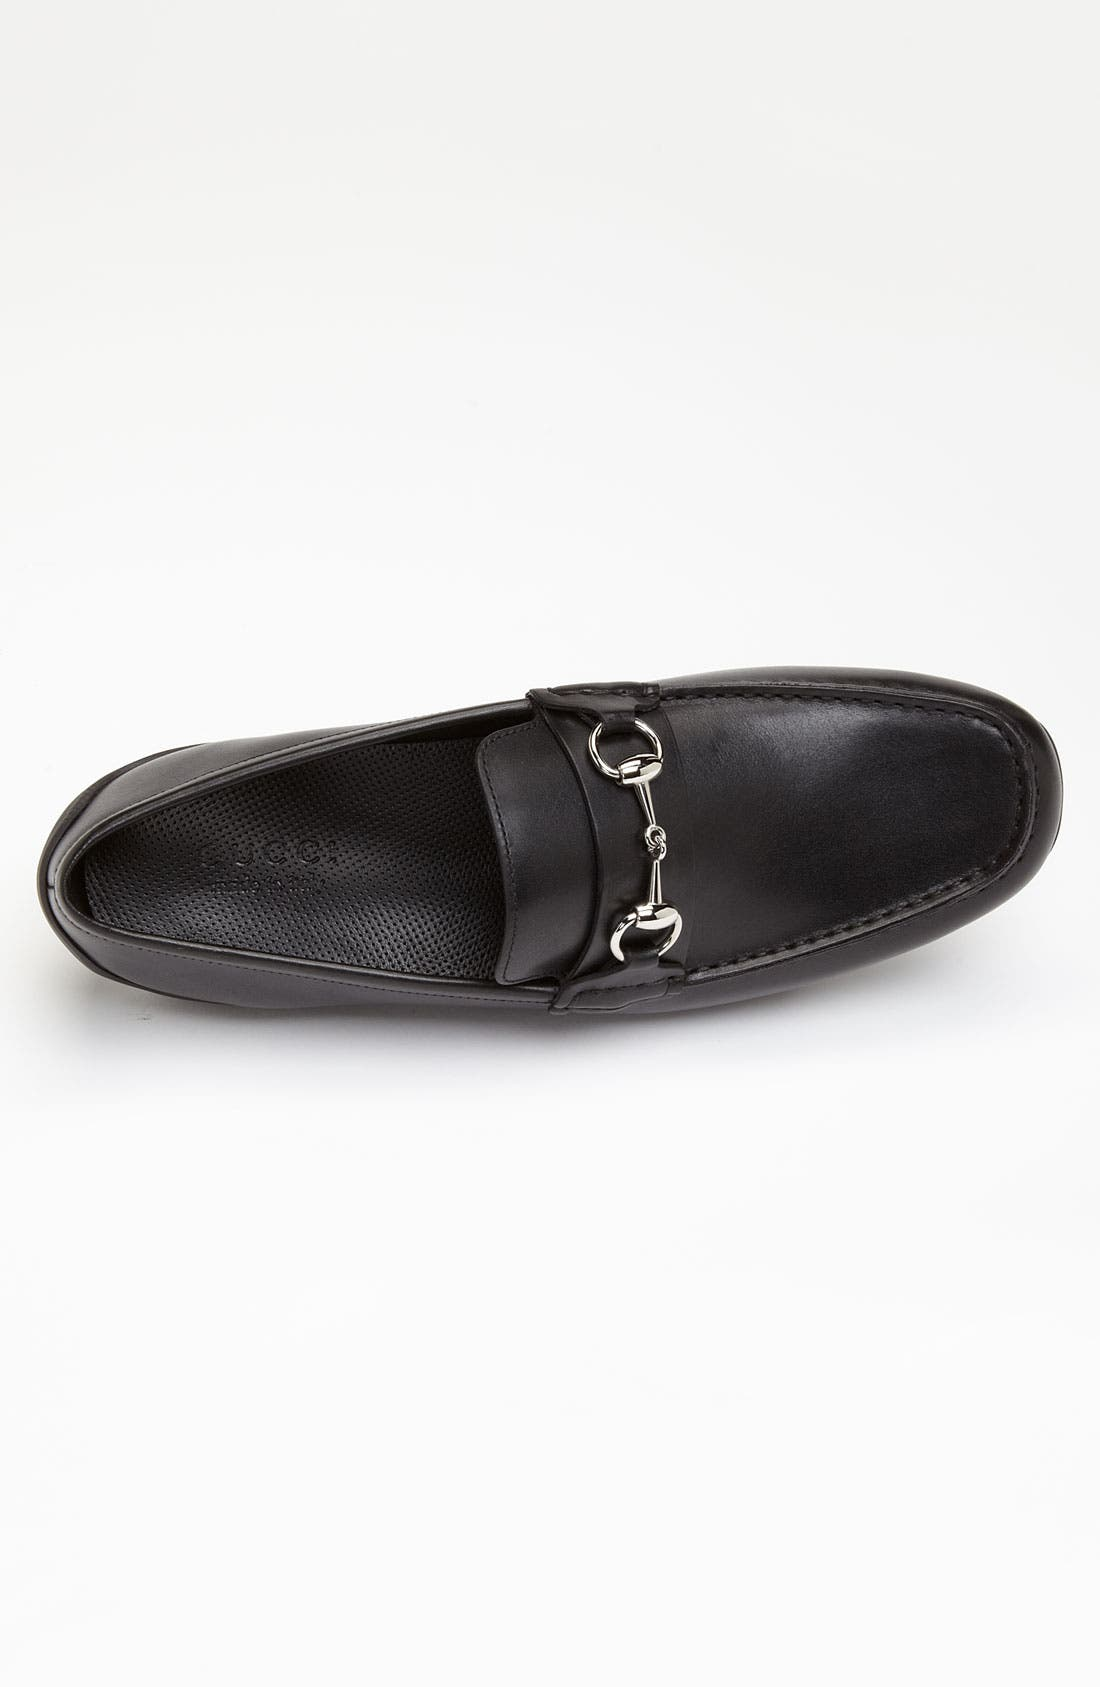 Alternate Image 3  - Gucci 'Silverstone' Moccasin Loafer